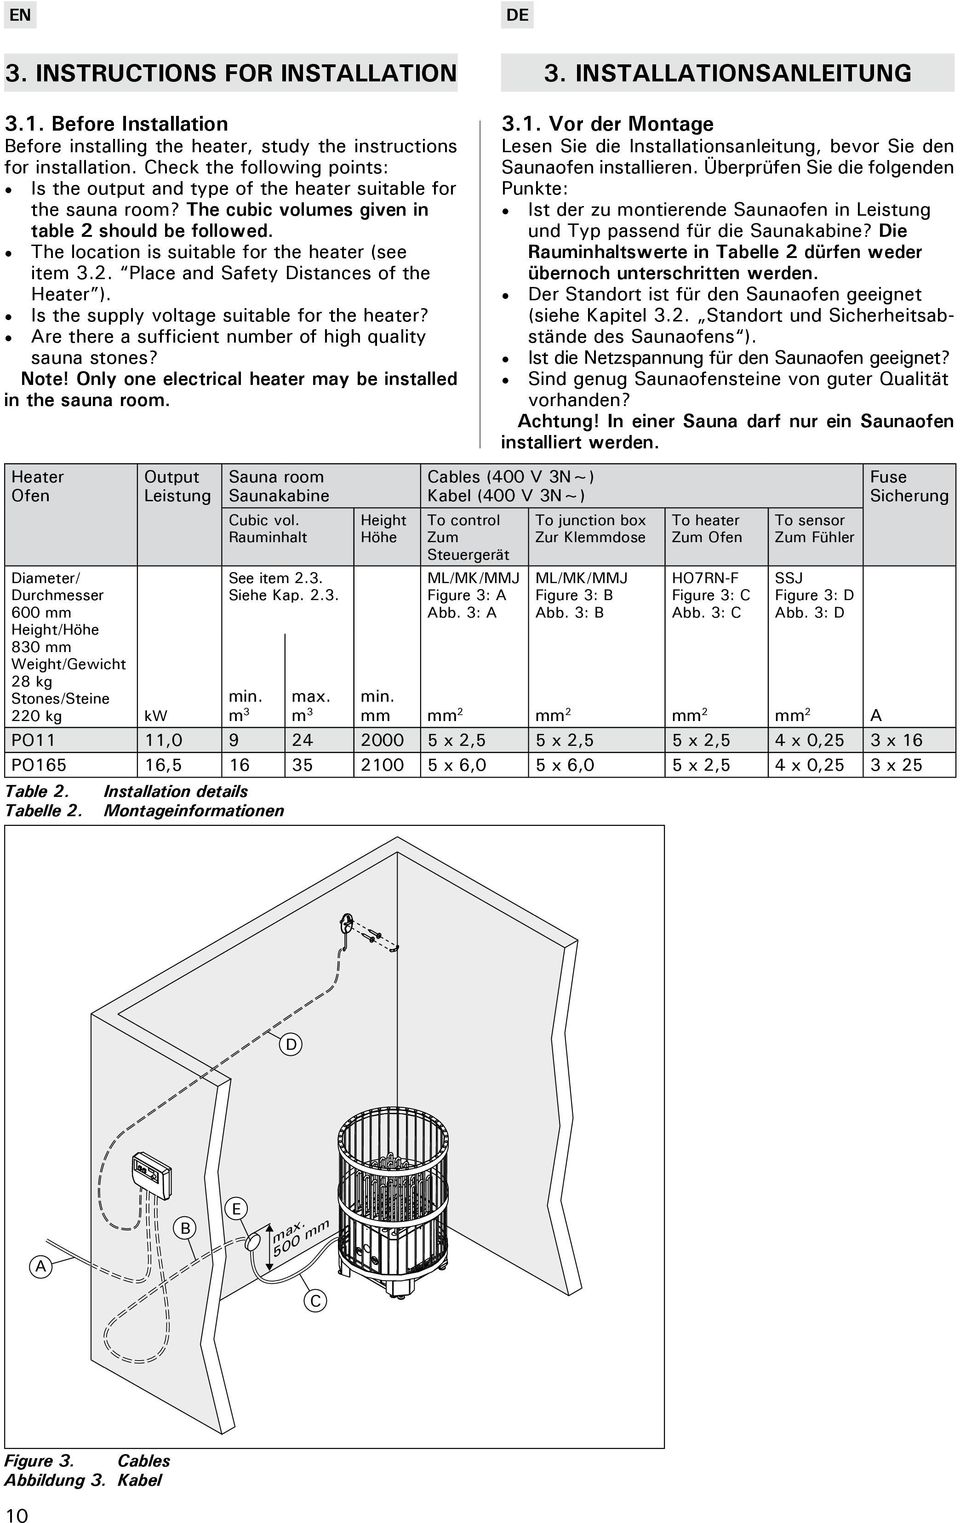 The location is suitable for the heater (see item 3.2. Place and Safety Distances of the Heater ). Is the supply voltage suitable for the heater?